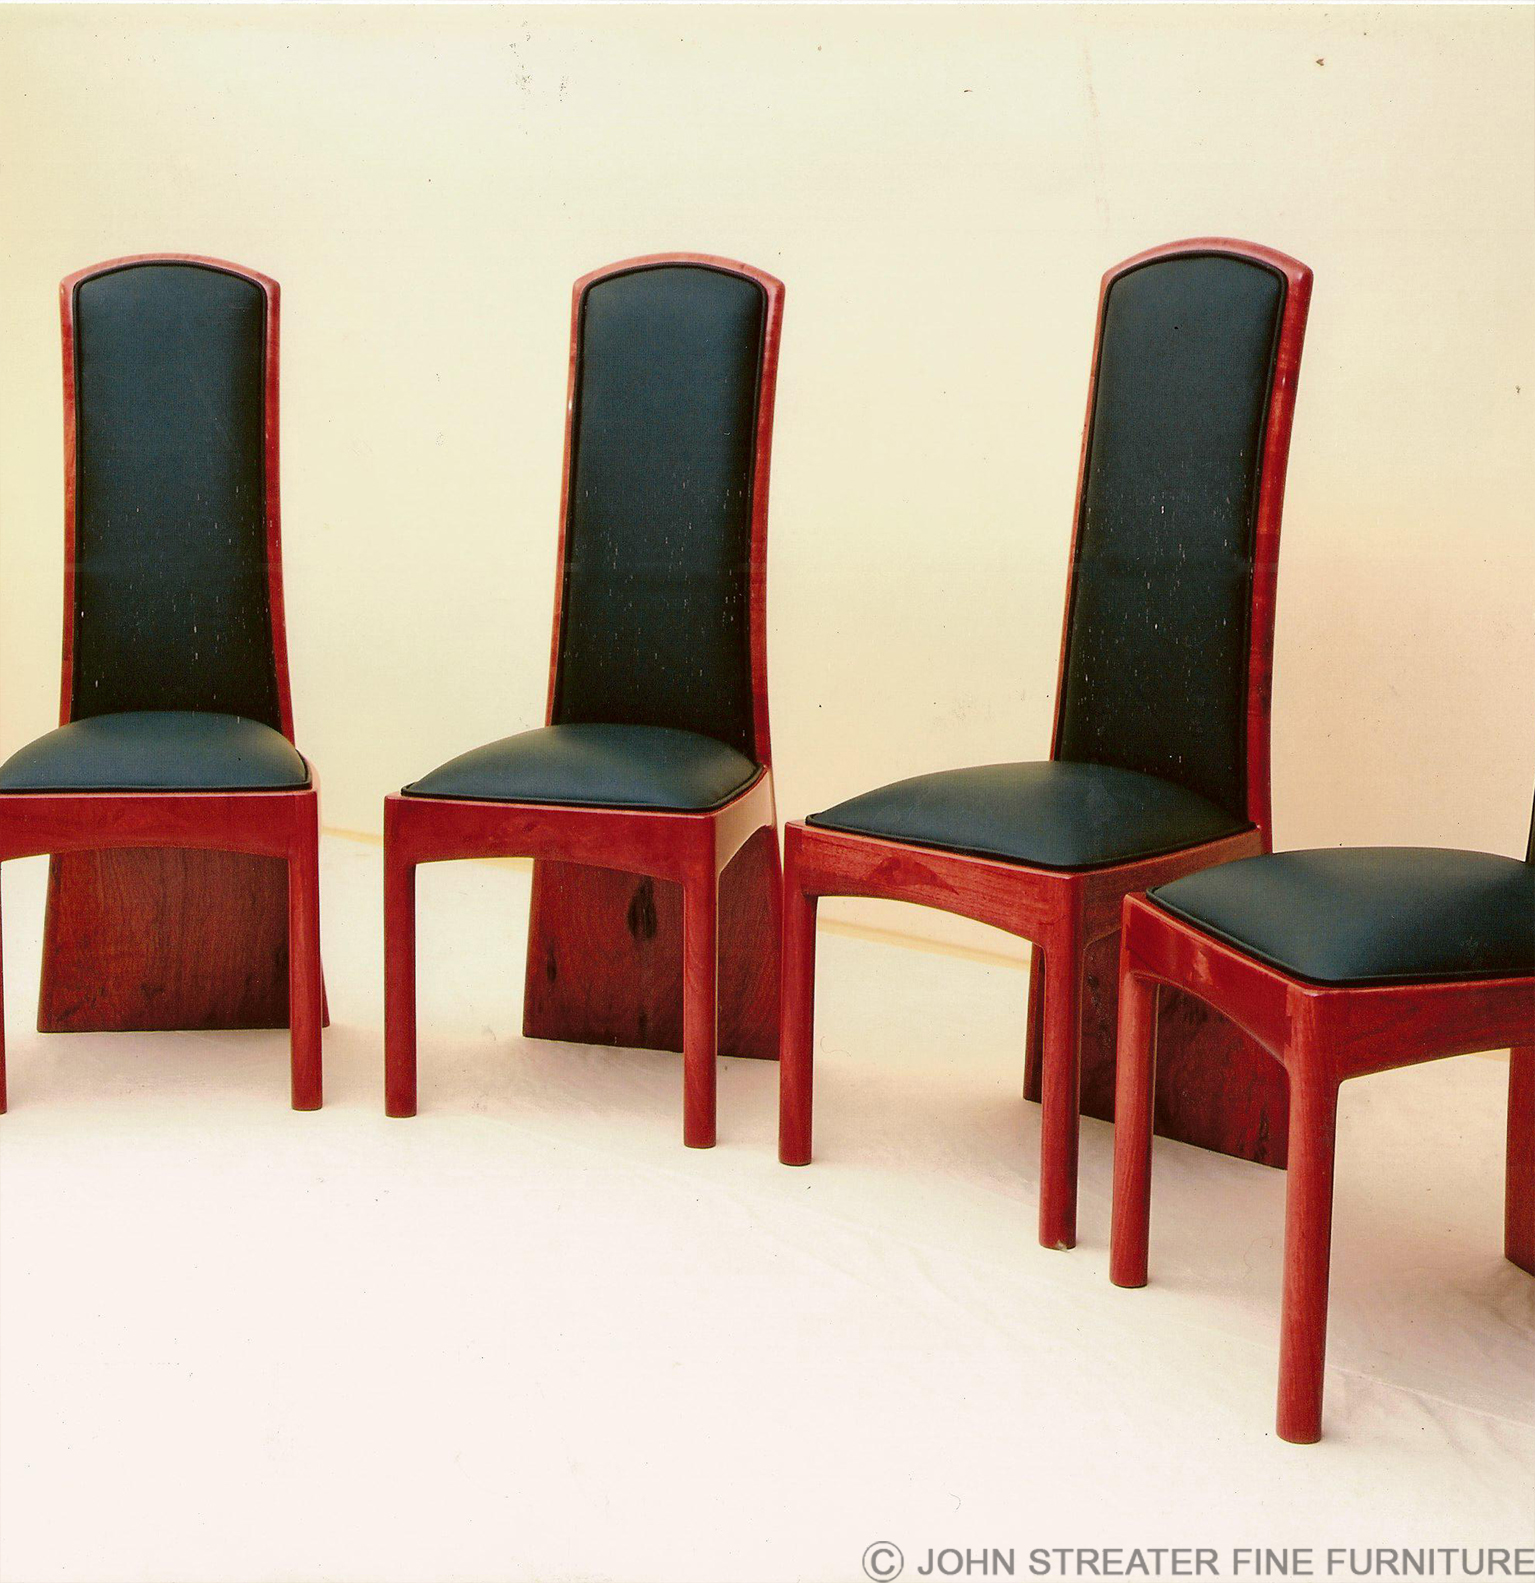 Handmade Chairs